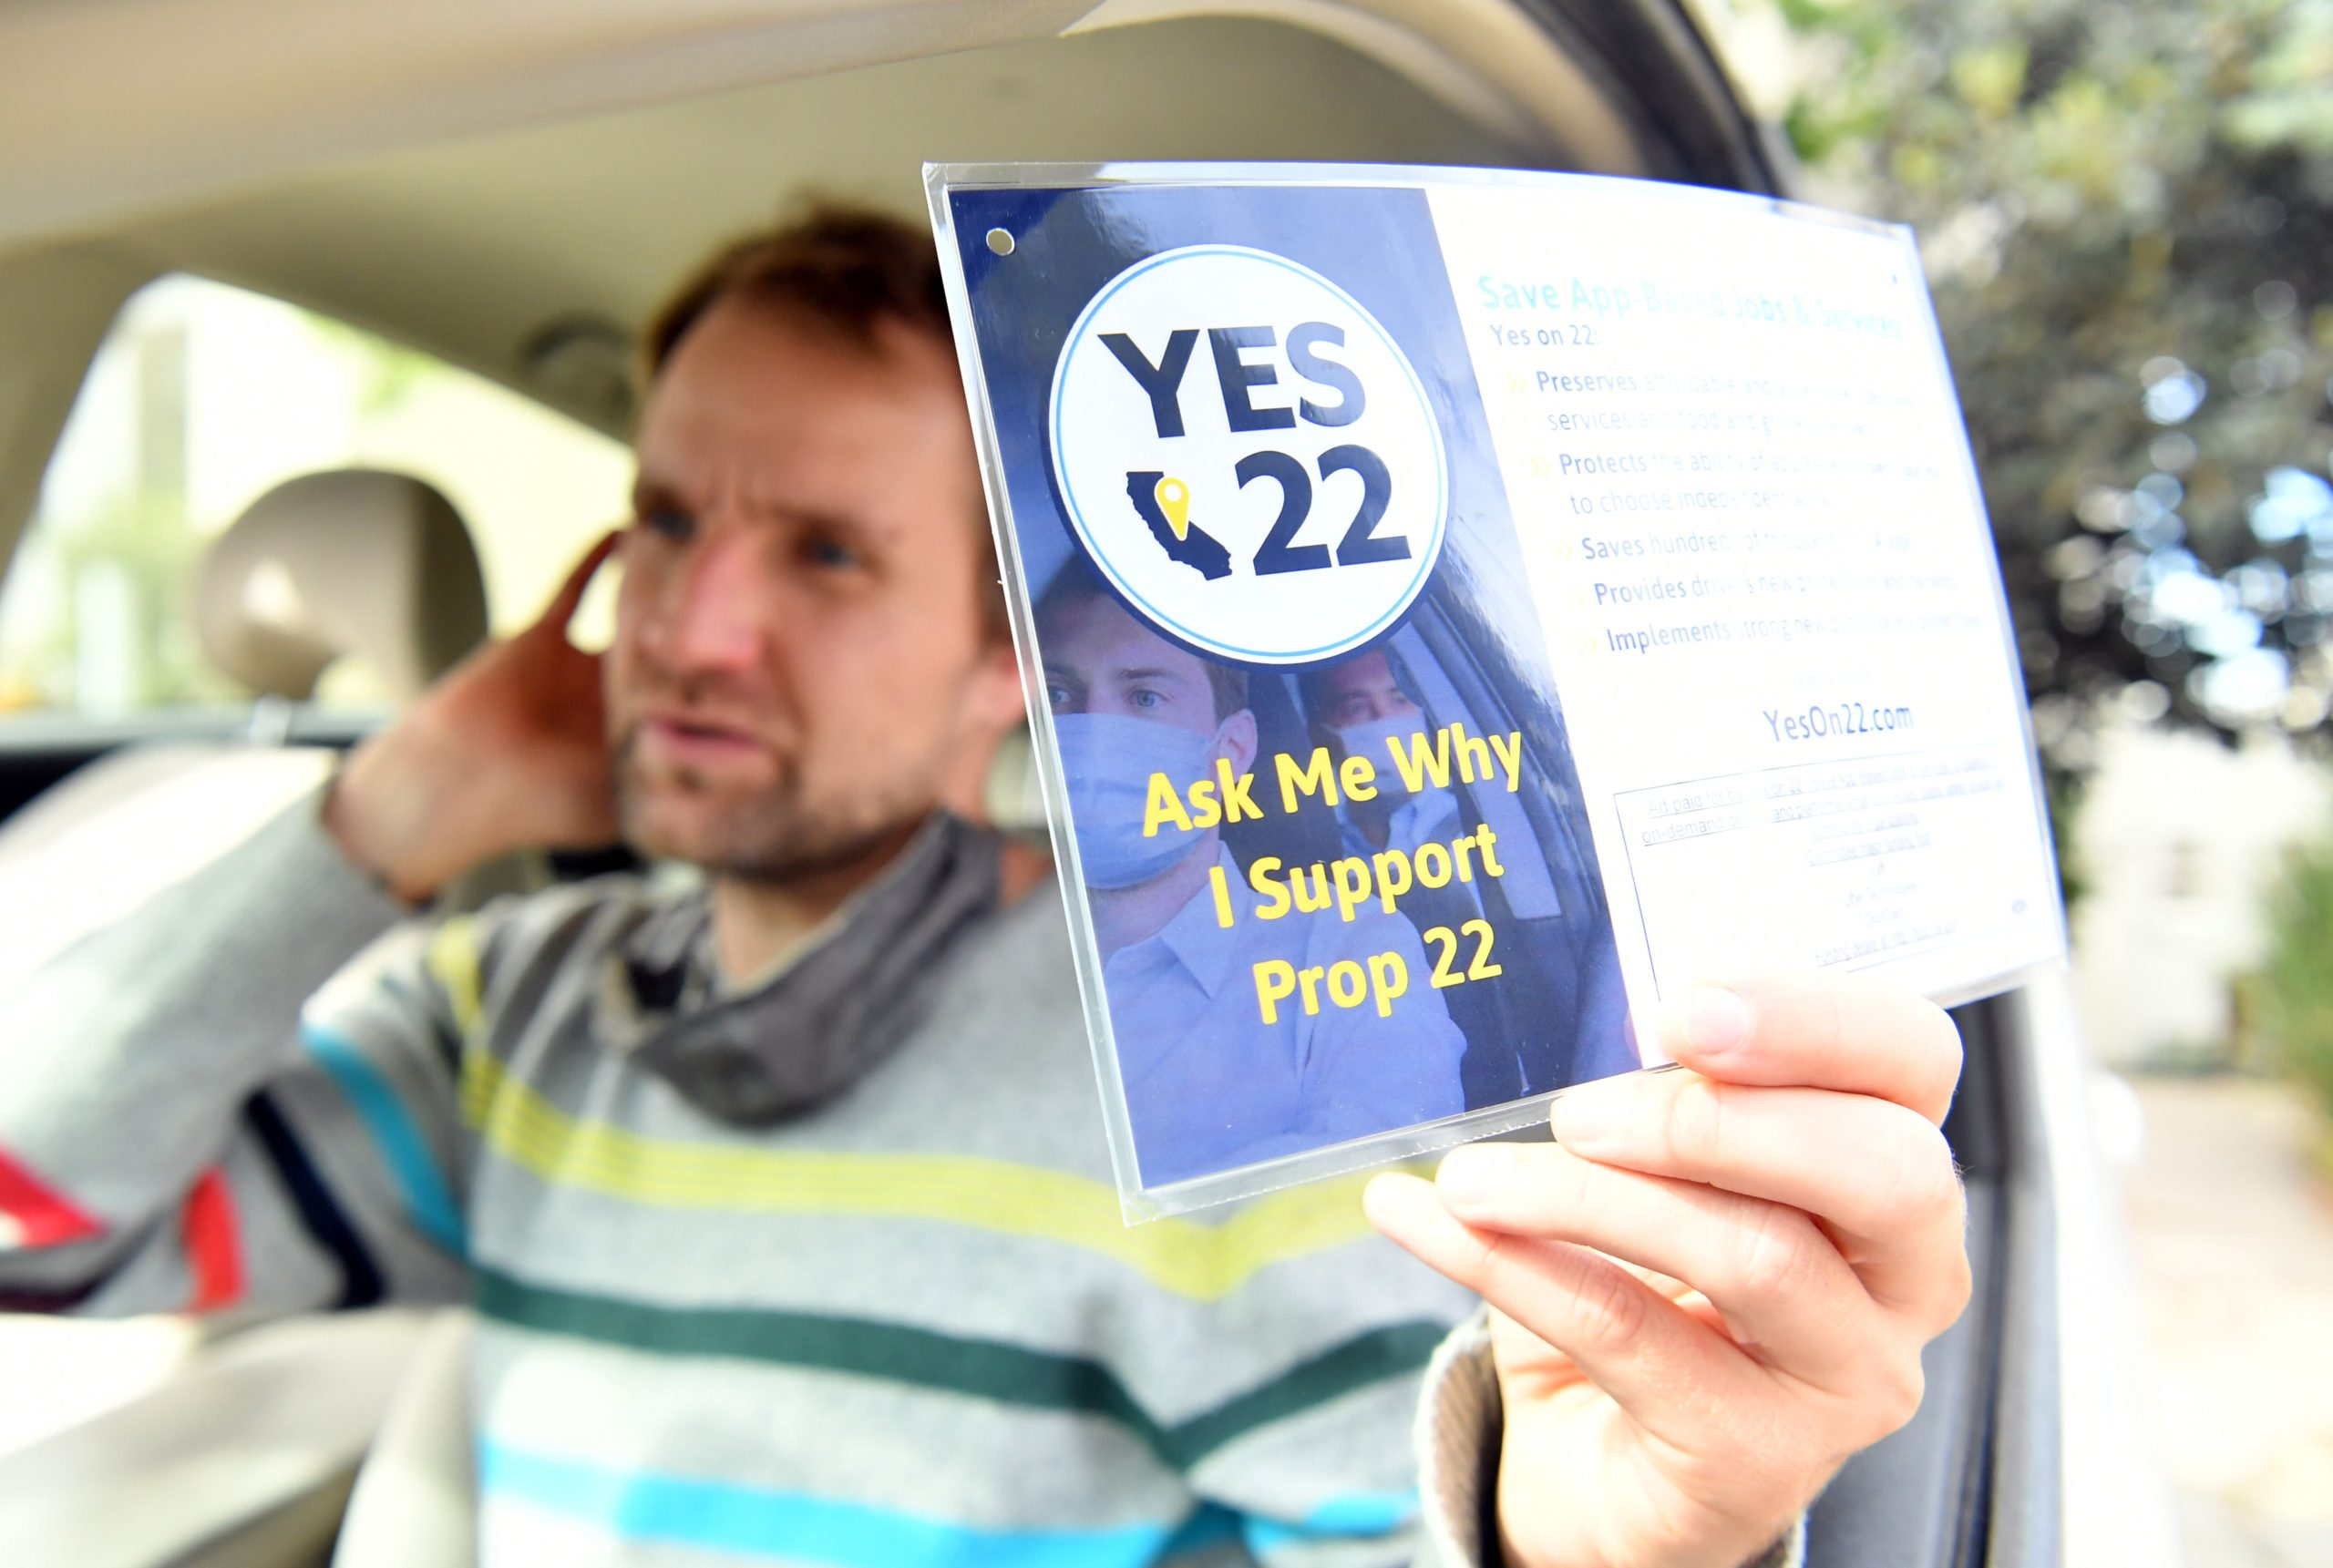 Uber driver Sergei Fyodorov discusses why he supports a yes vote on Proposition 22 in Oakland, California on Oct. 9, 2020. (Josh Edelson/AFP via Getty Images)